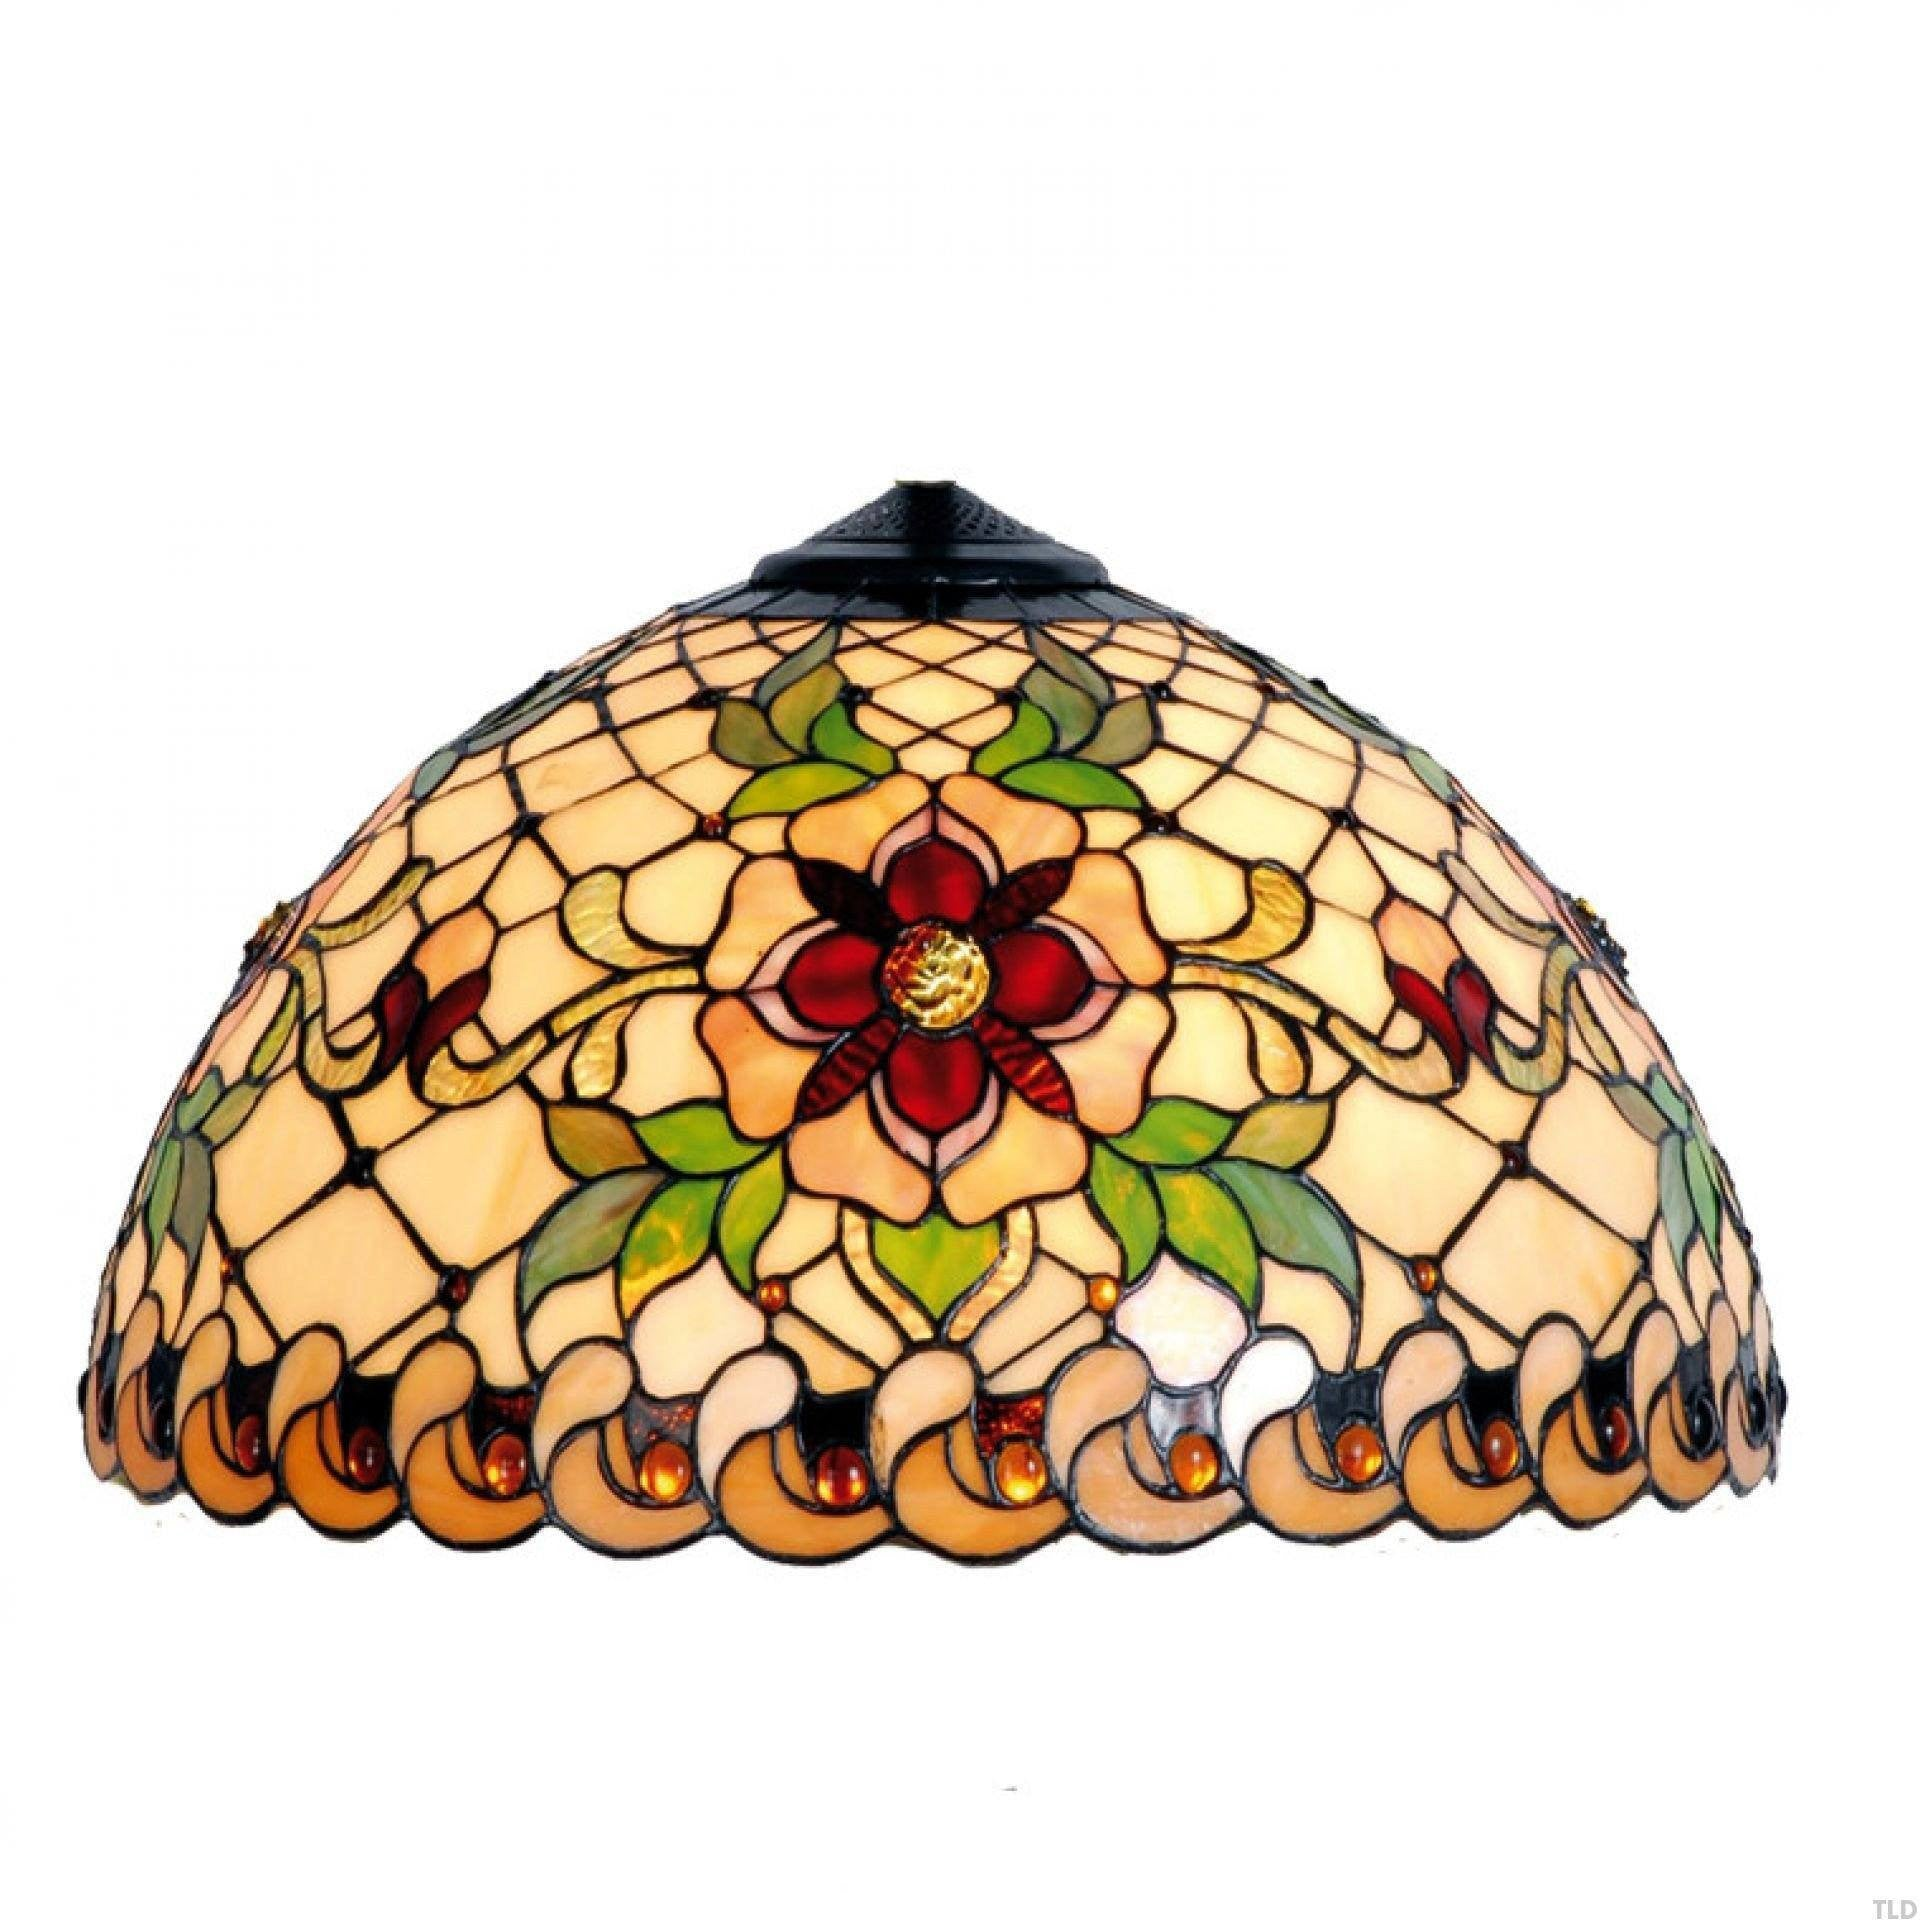 Tiffany Replacement Table Lamp Shades & Bases - Angelique Small Tiffany Replacement Table Lamp Shade